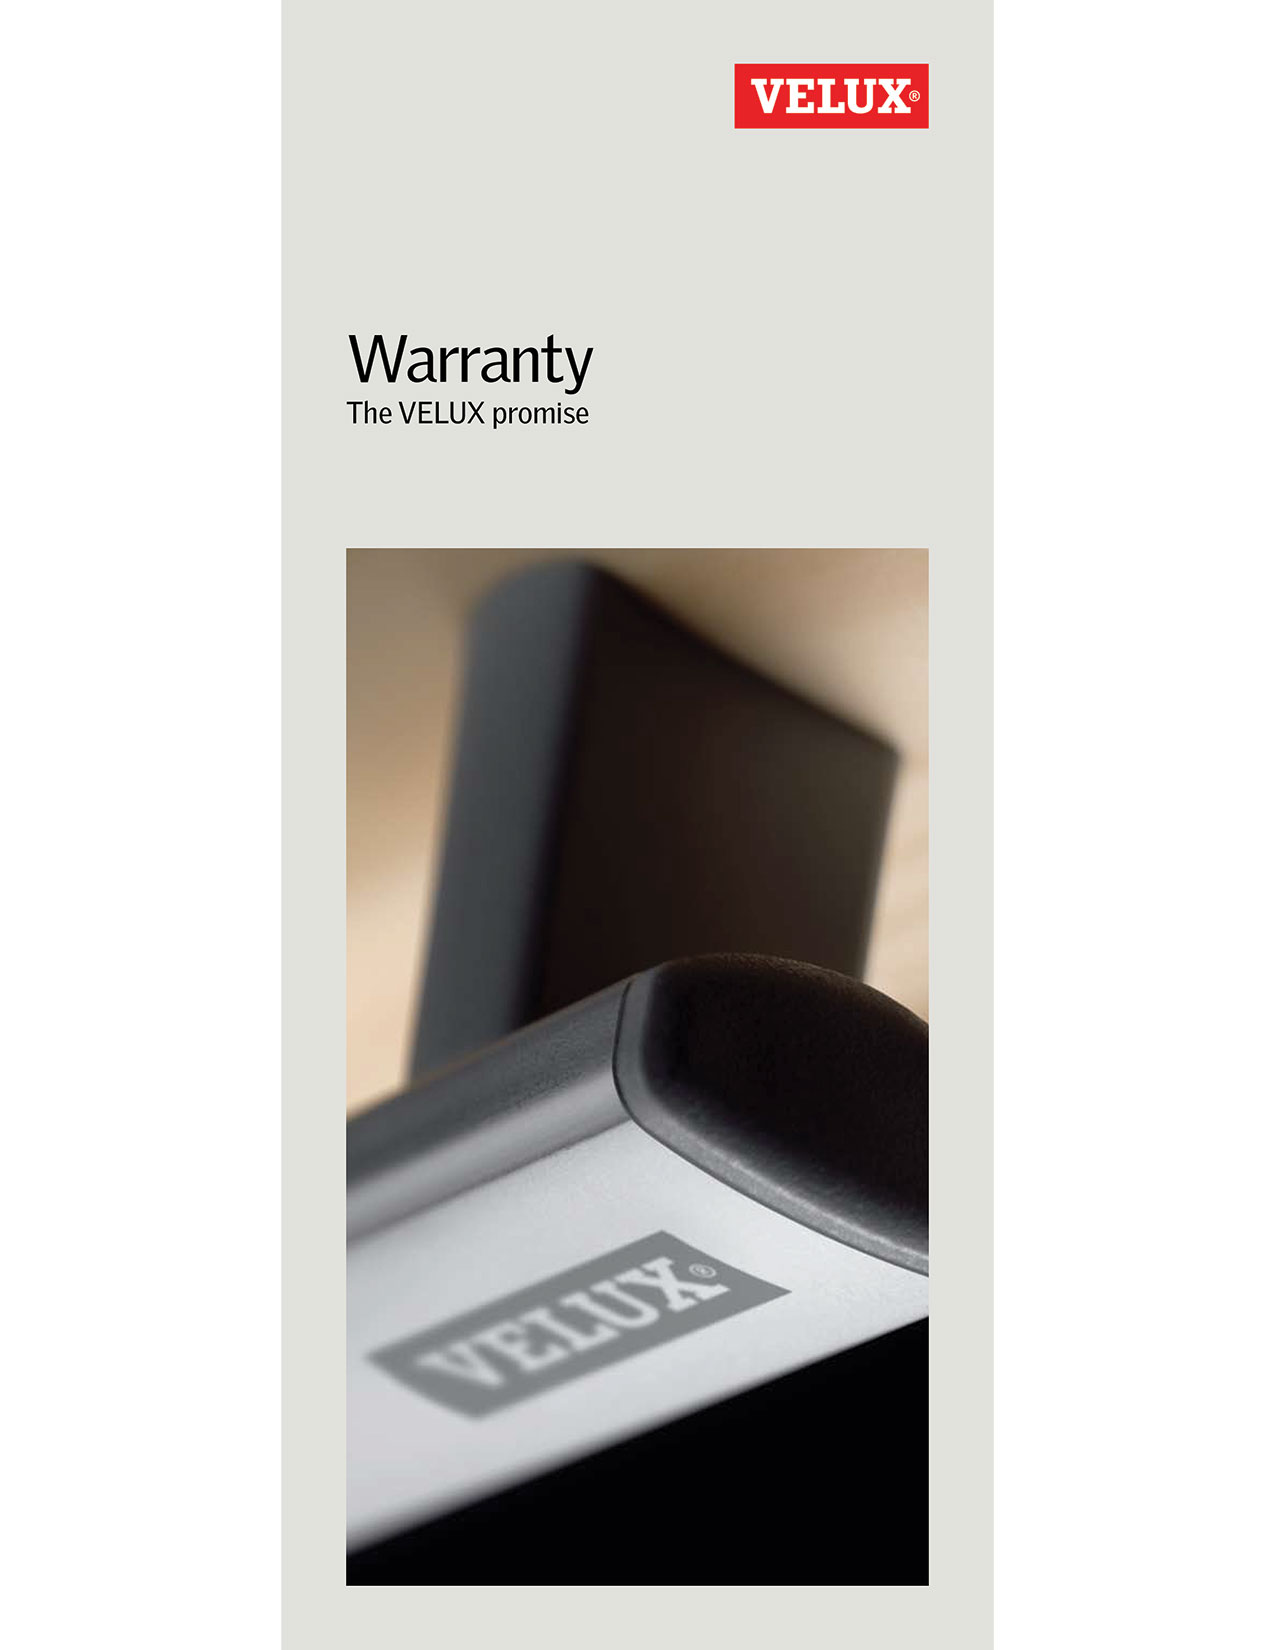 Product warranty for products prior 2010